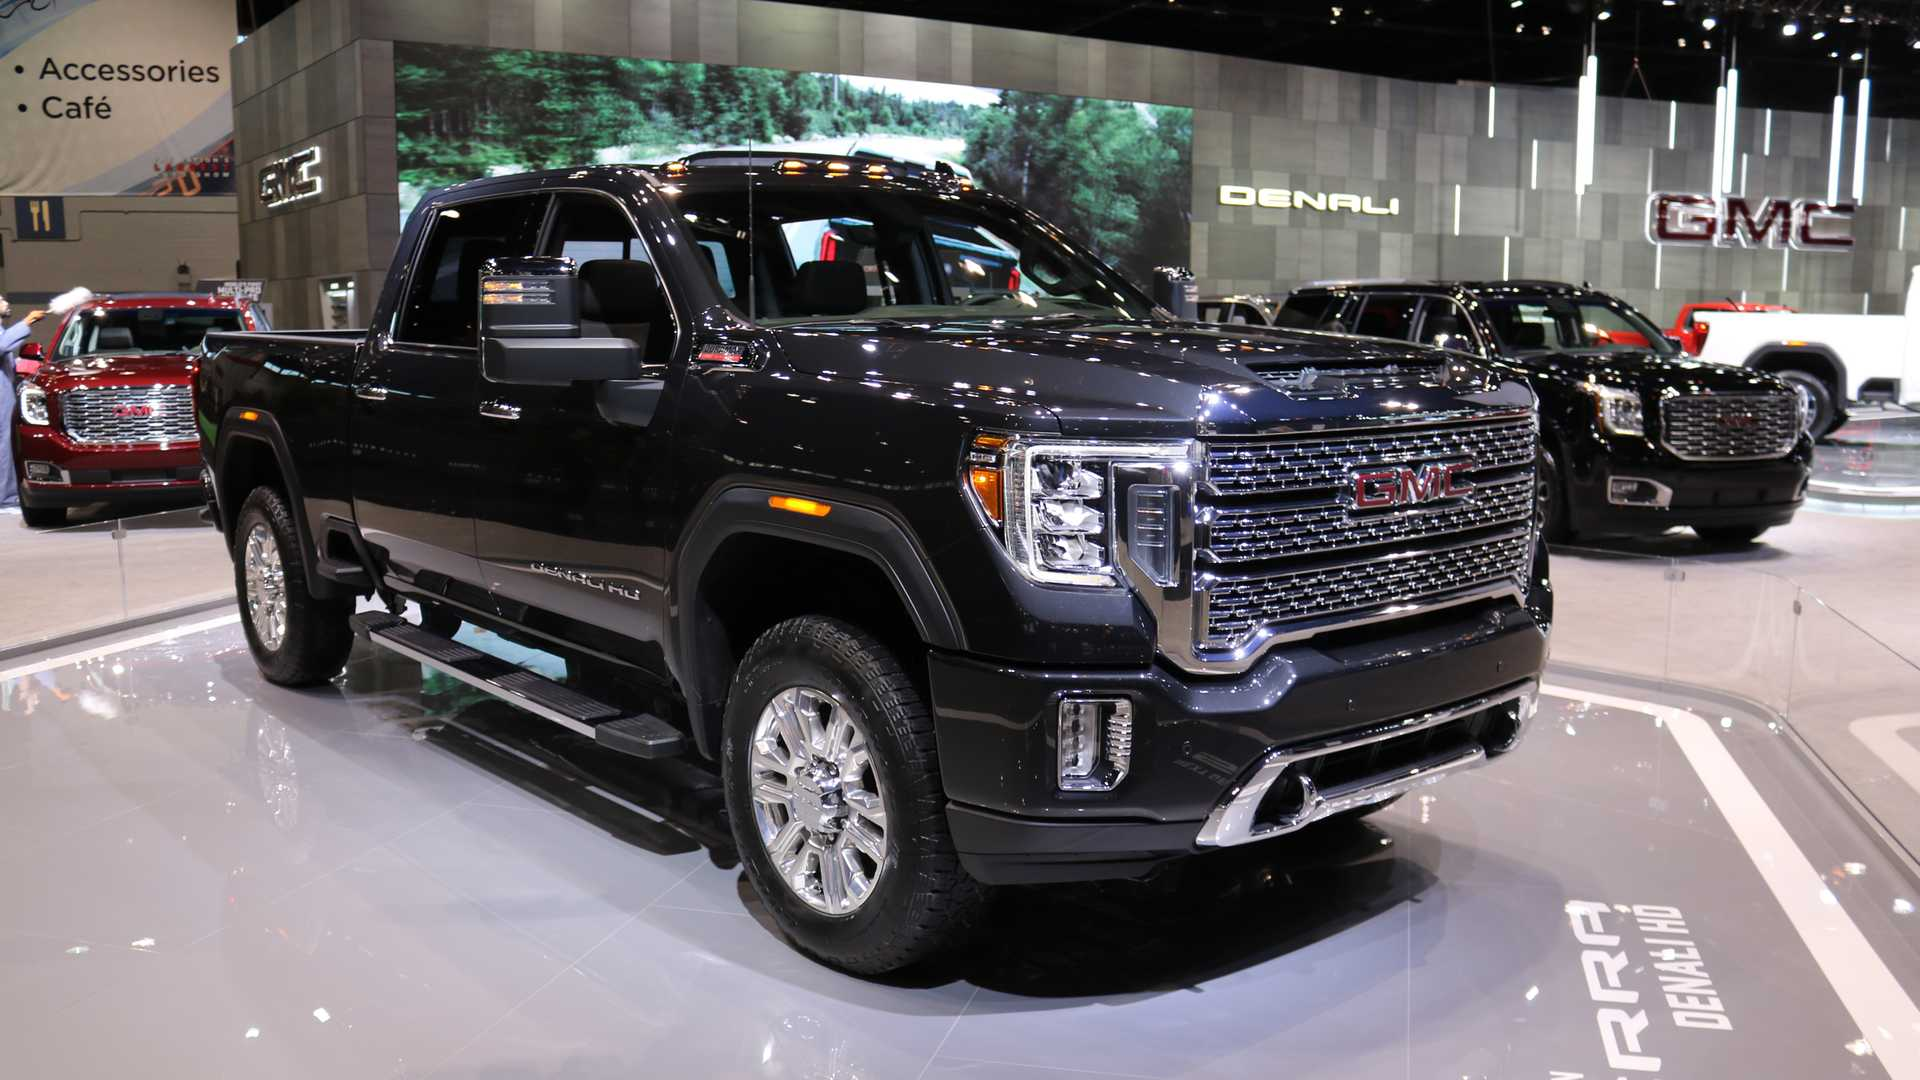 23 The Best 2020 Gmc Sierra Denali 1500 Hd Exterior